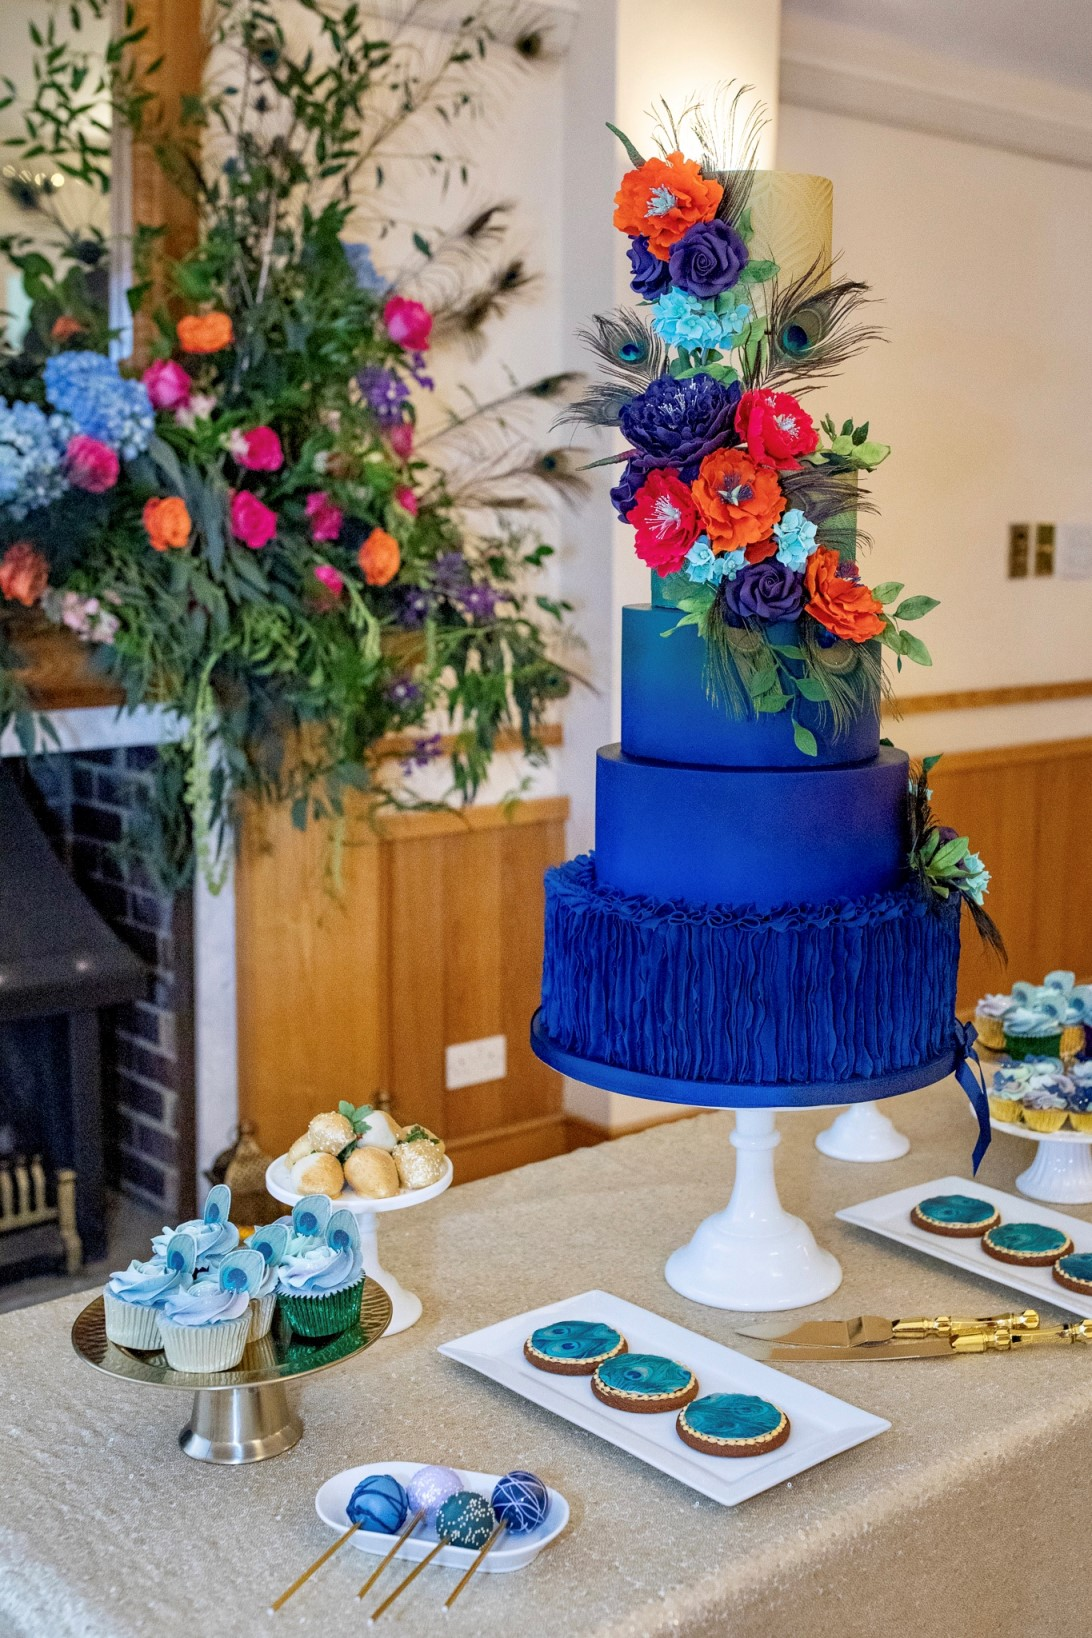 peacock wedding- unconventional wedding- peacock wedding cake- colourful wedding cake- colourful wedding flowers